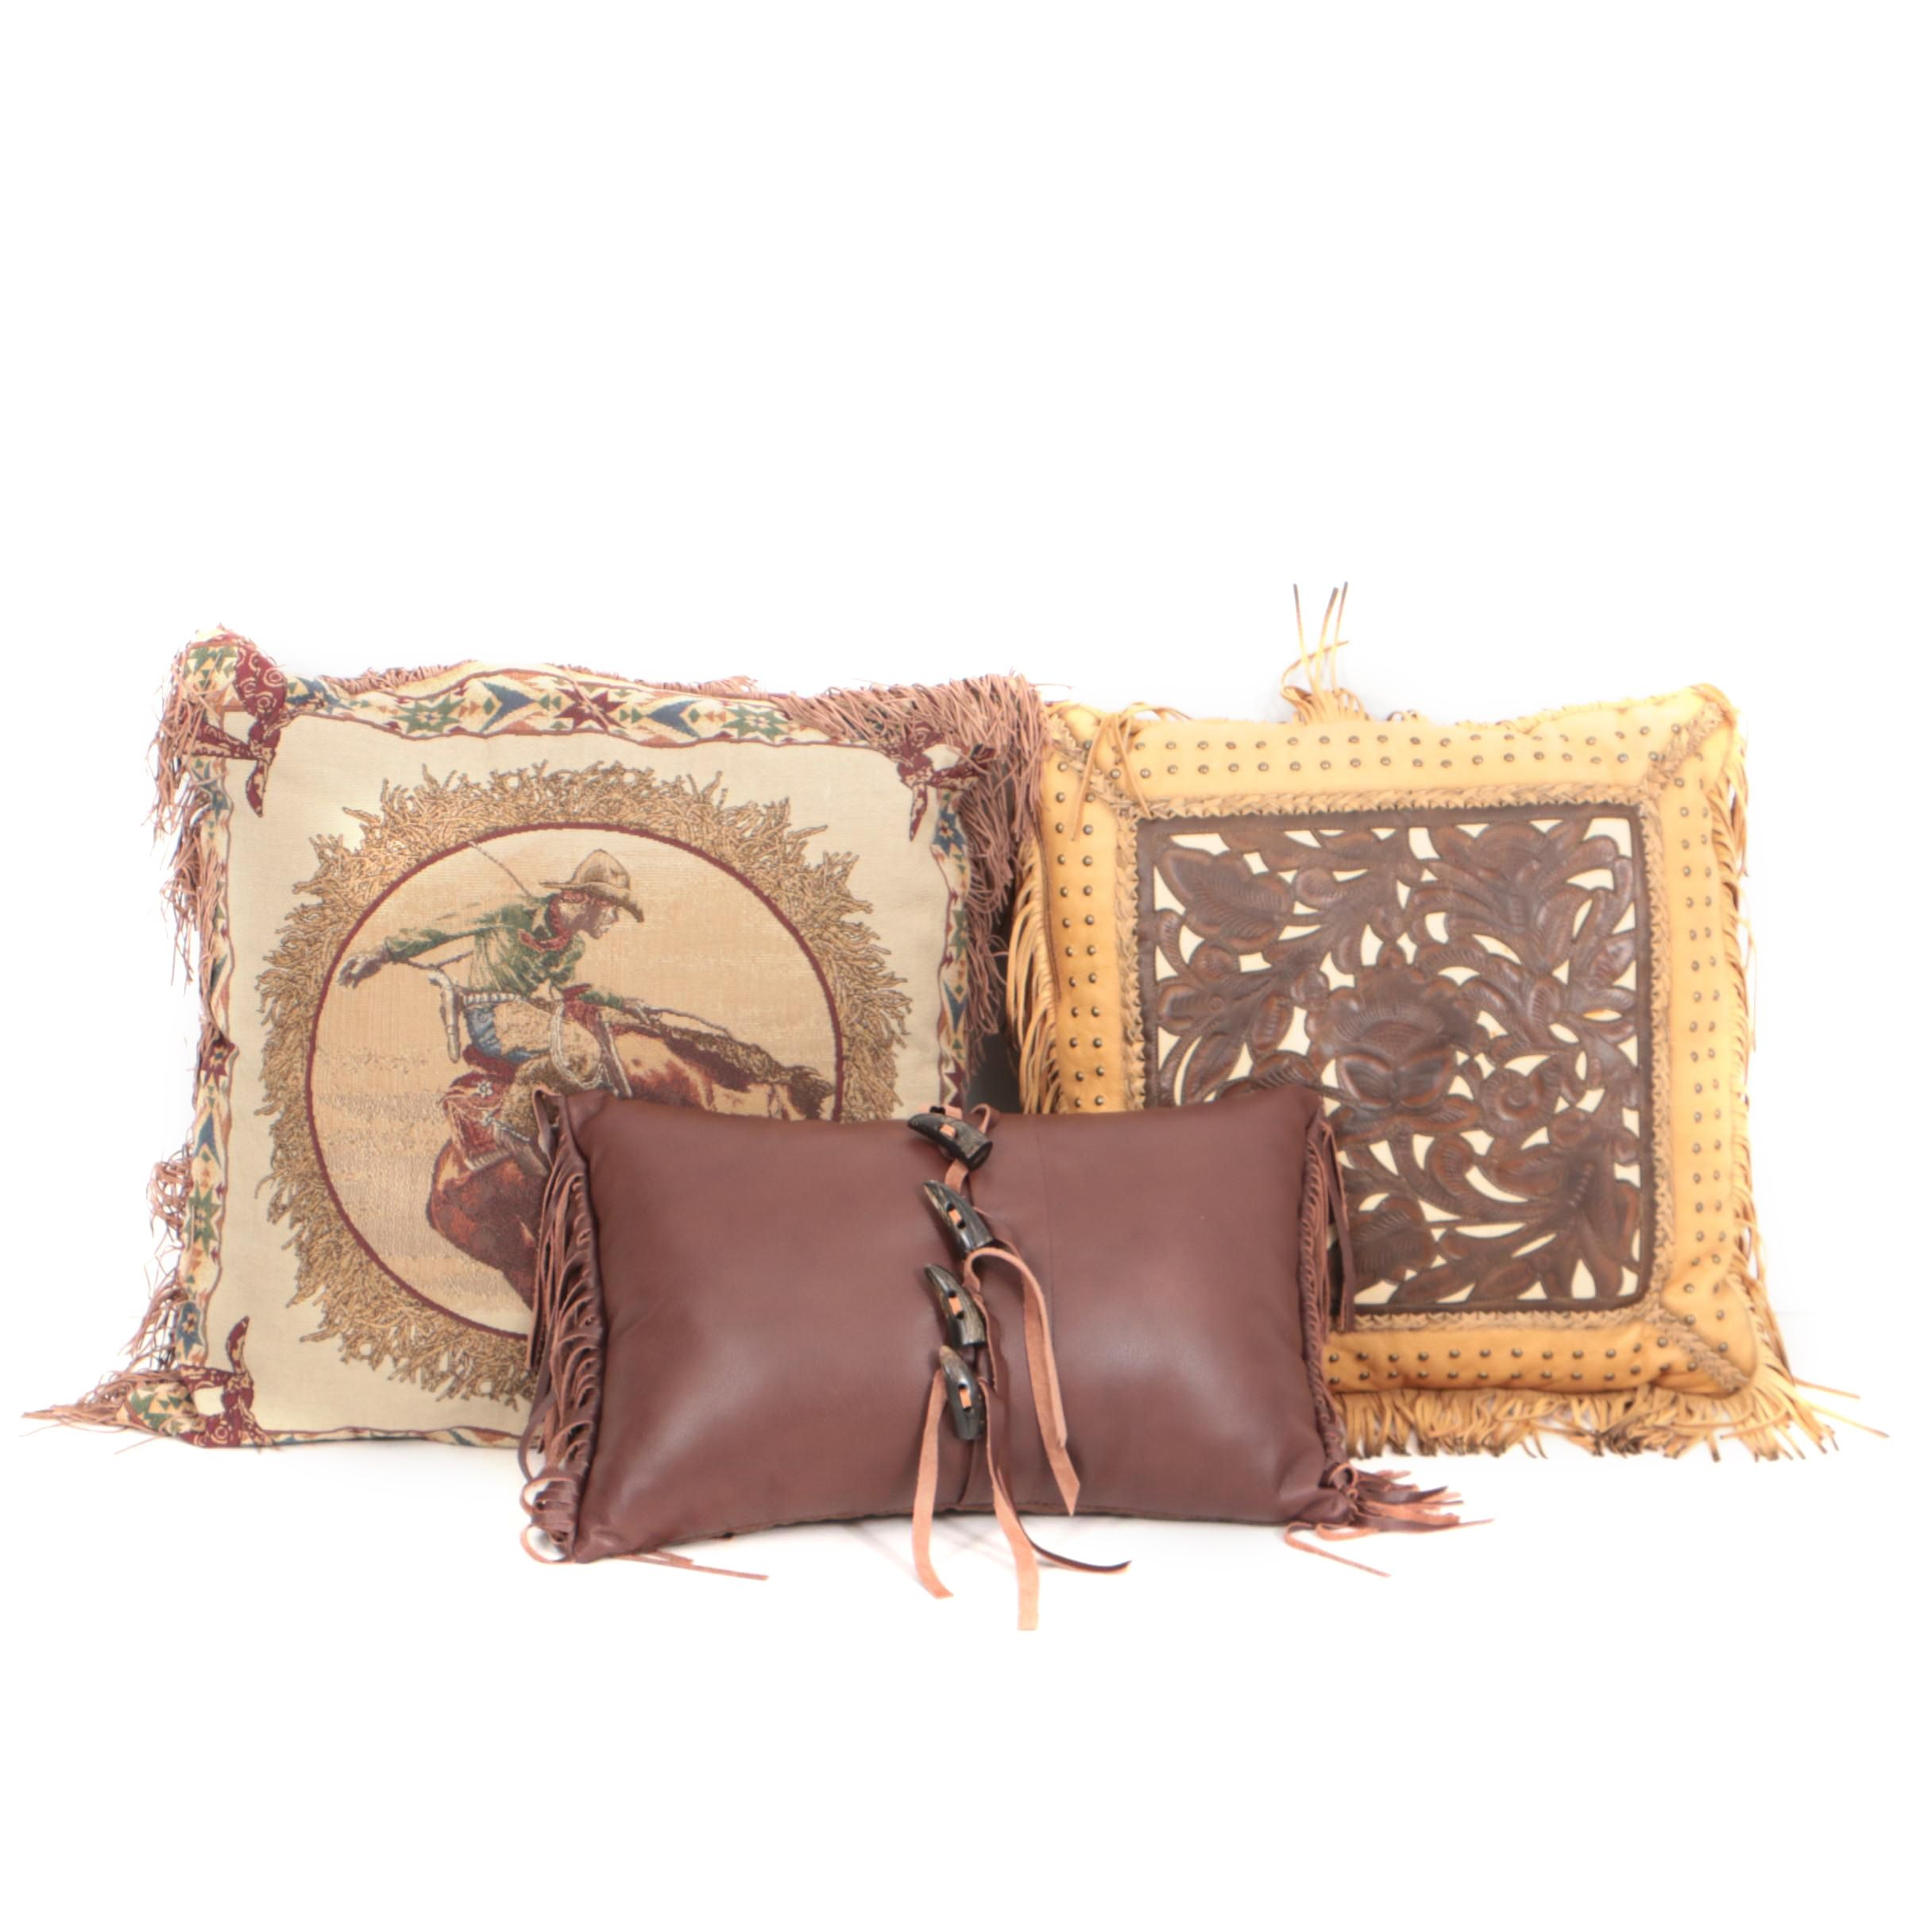 Three Western Themed Accent Throw Pillows Including Leather